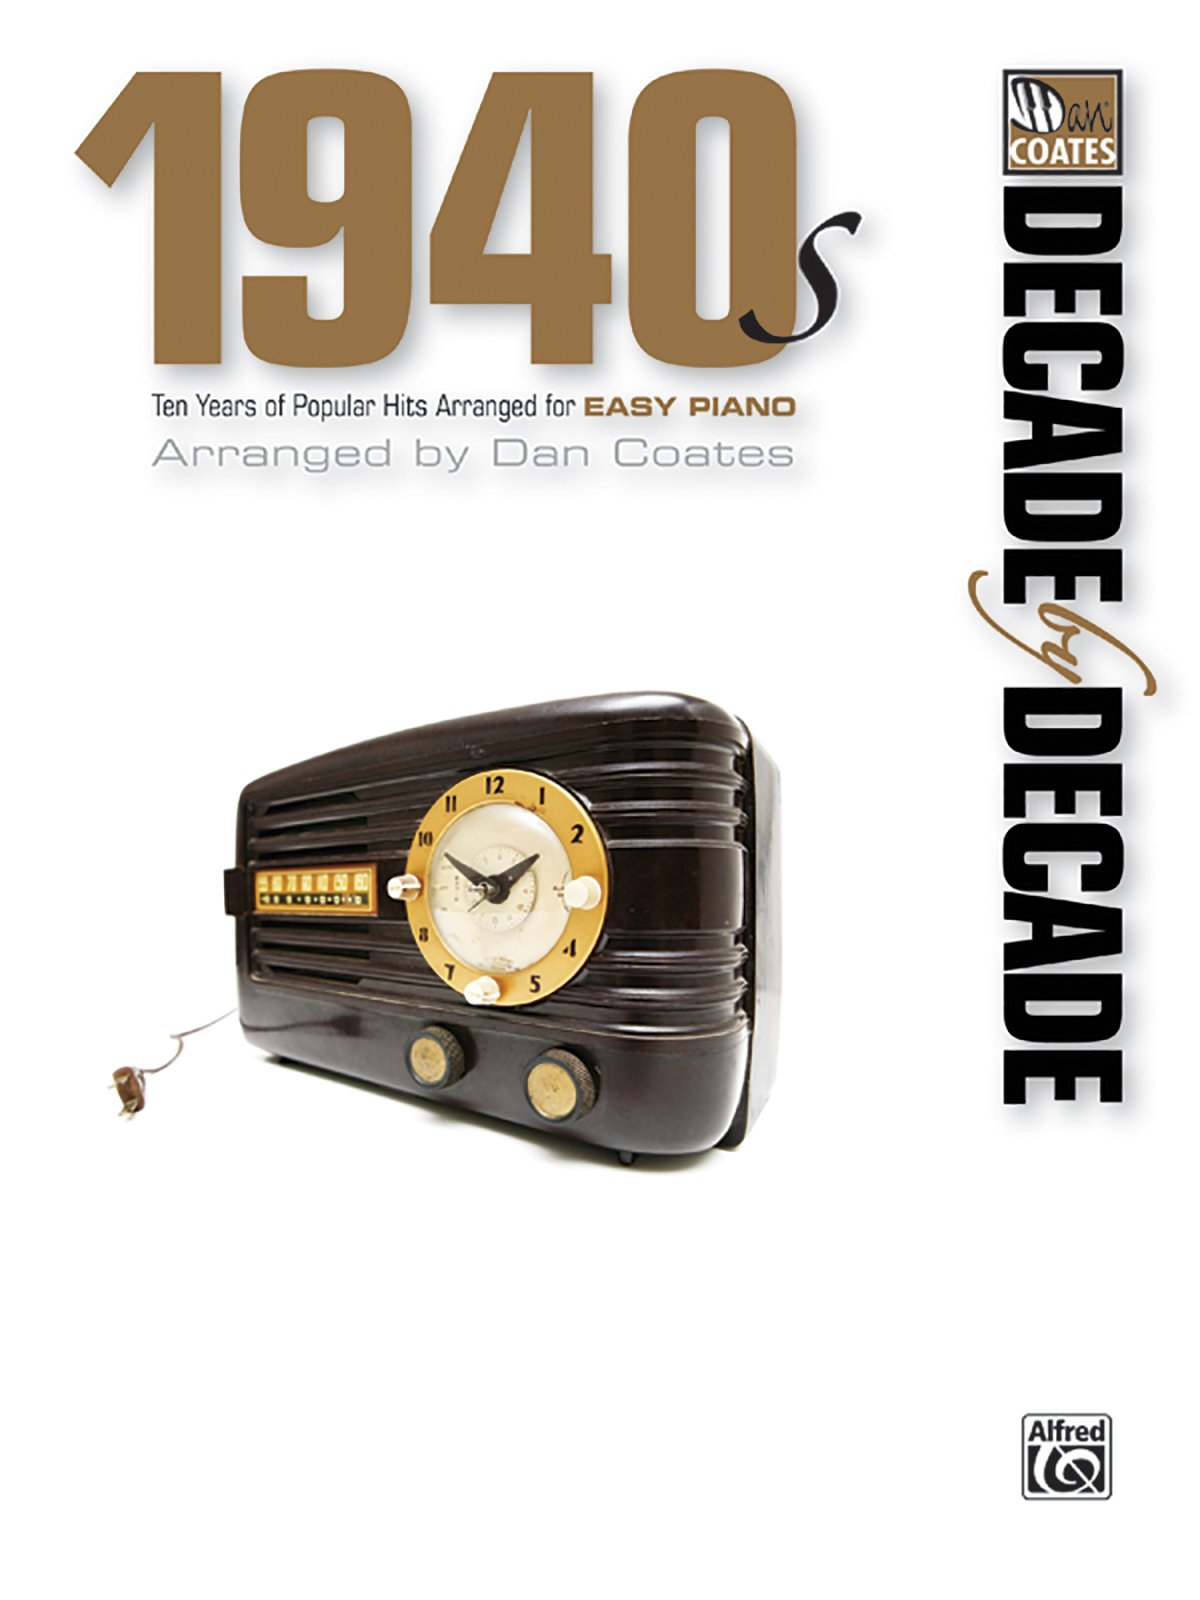 Read Online Decade by Decade 1940s: Ten Years of Popular Hits Arranged for EASY PIANO ebook